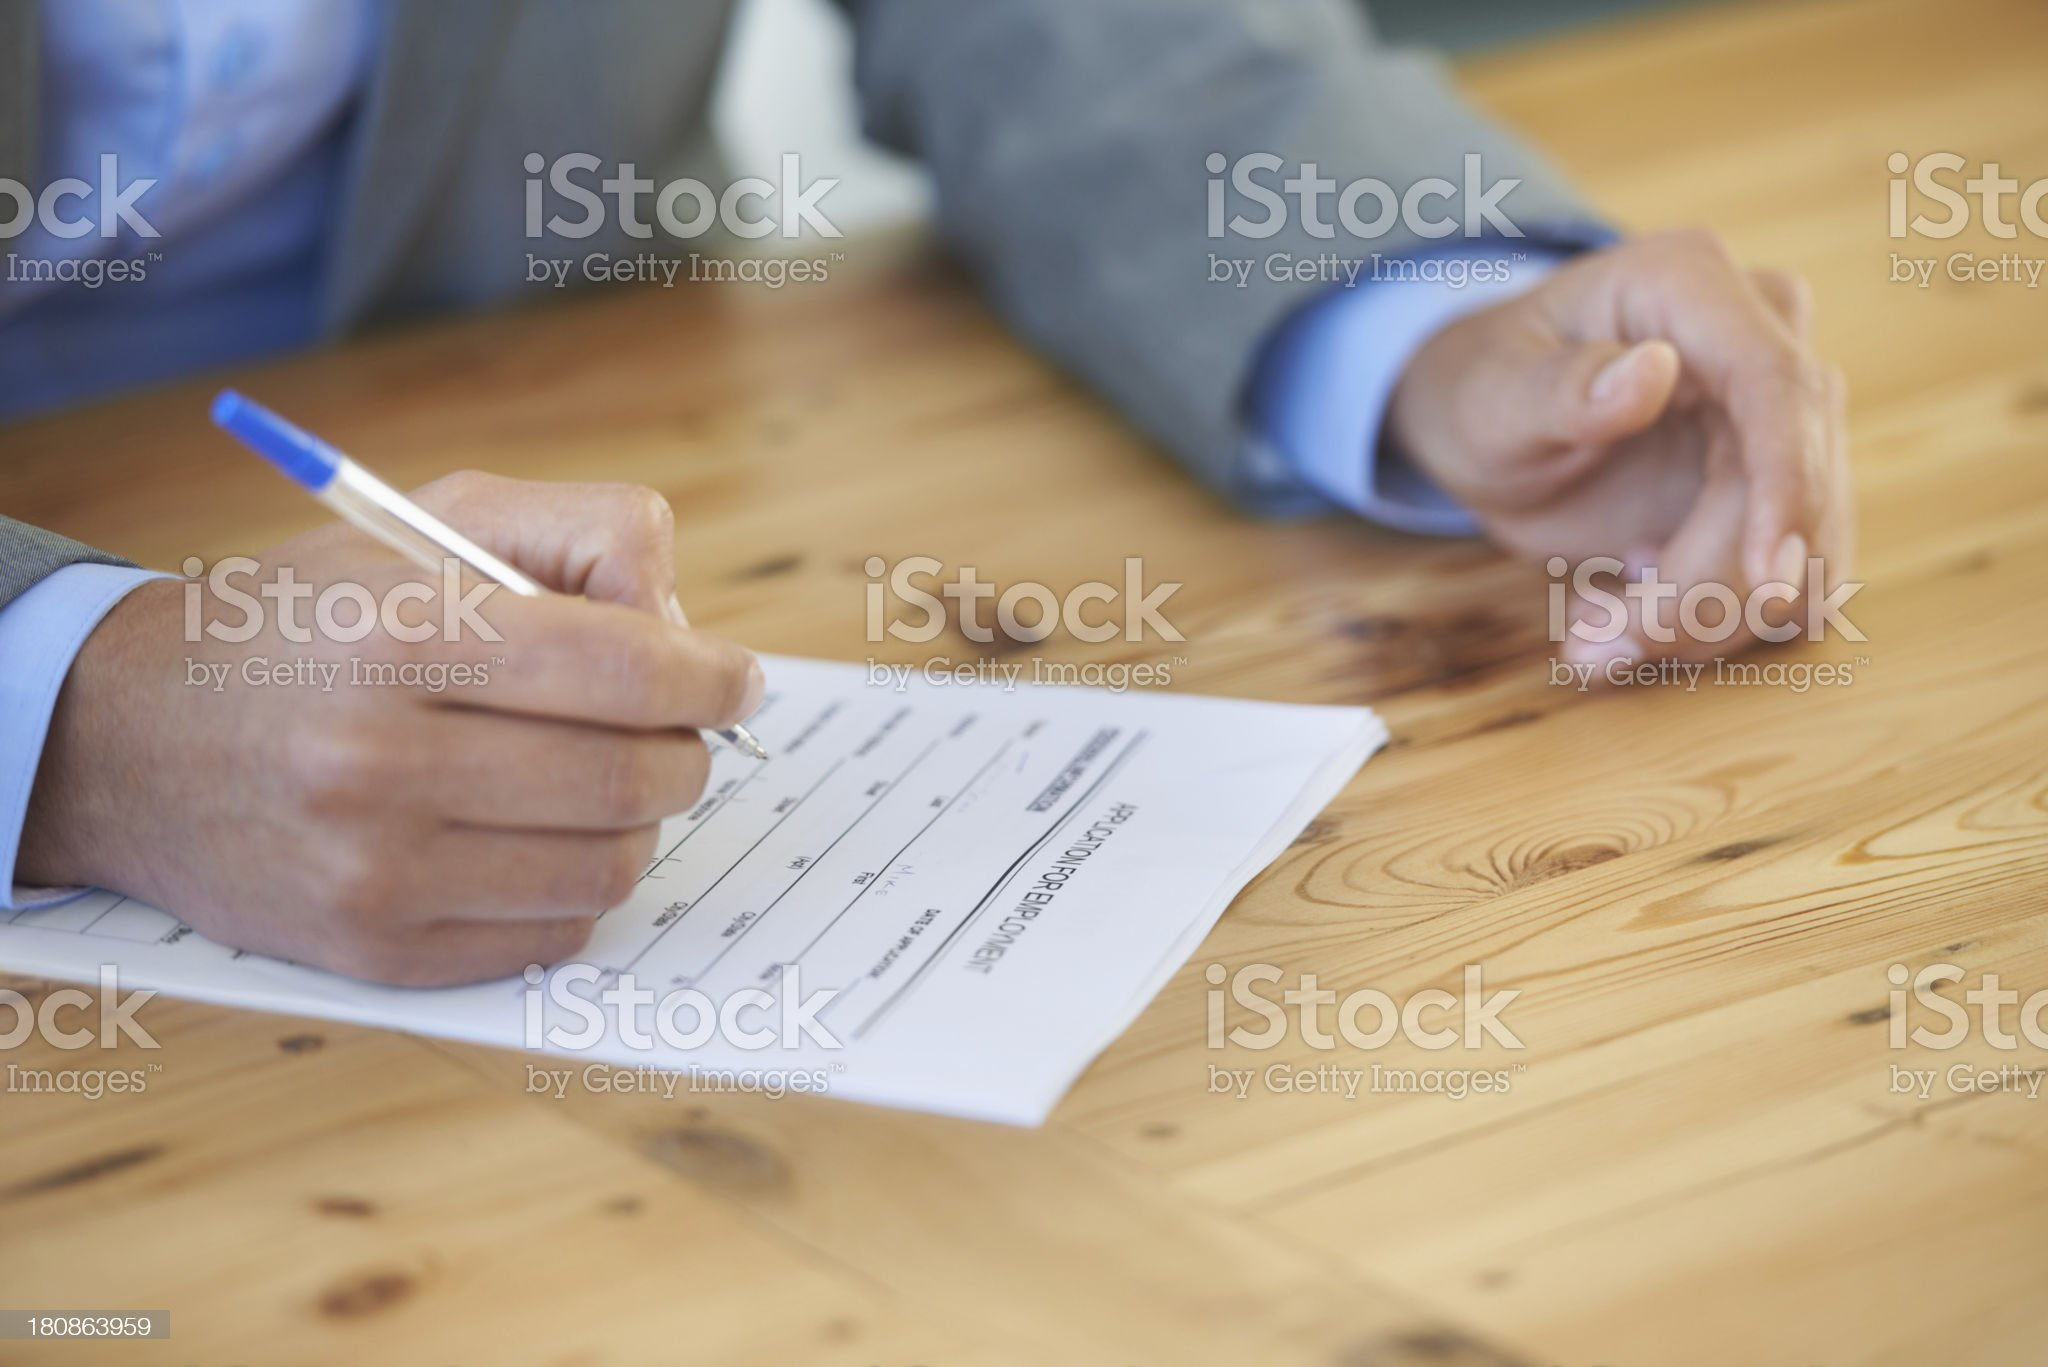 Applying for a job royalty-free stock photo